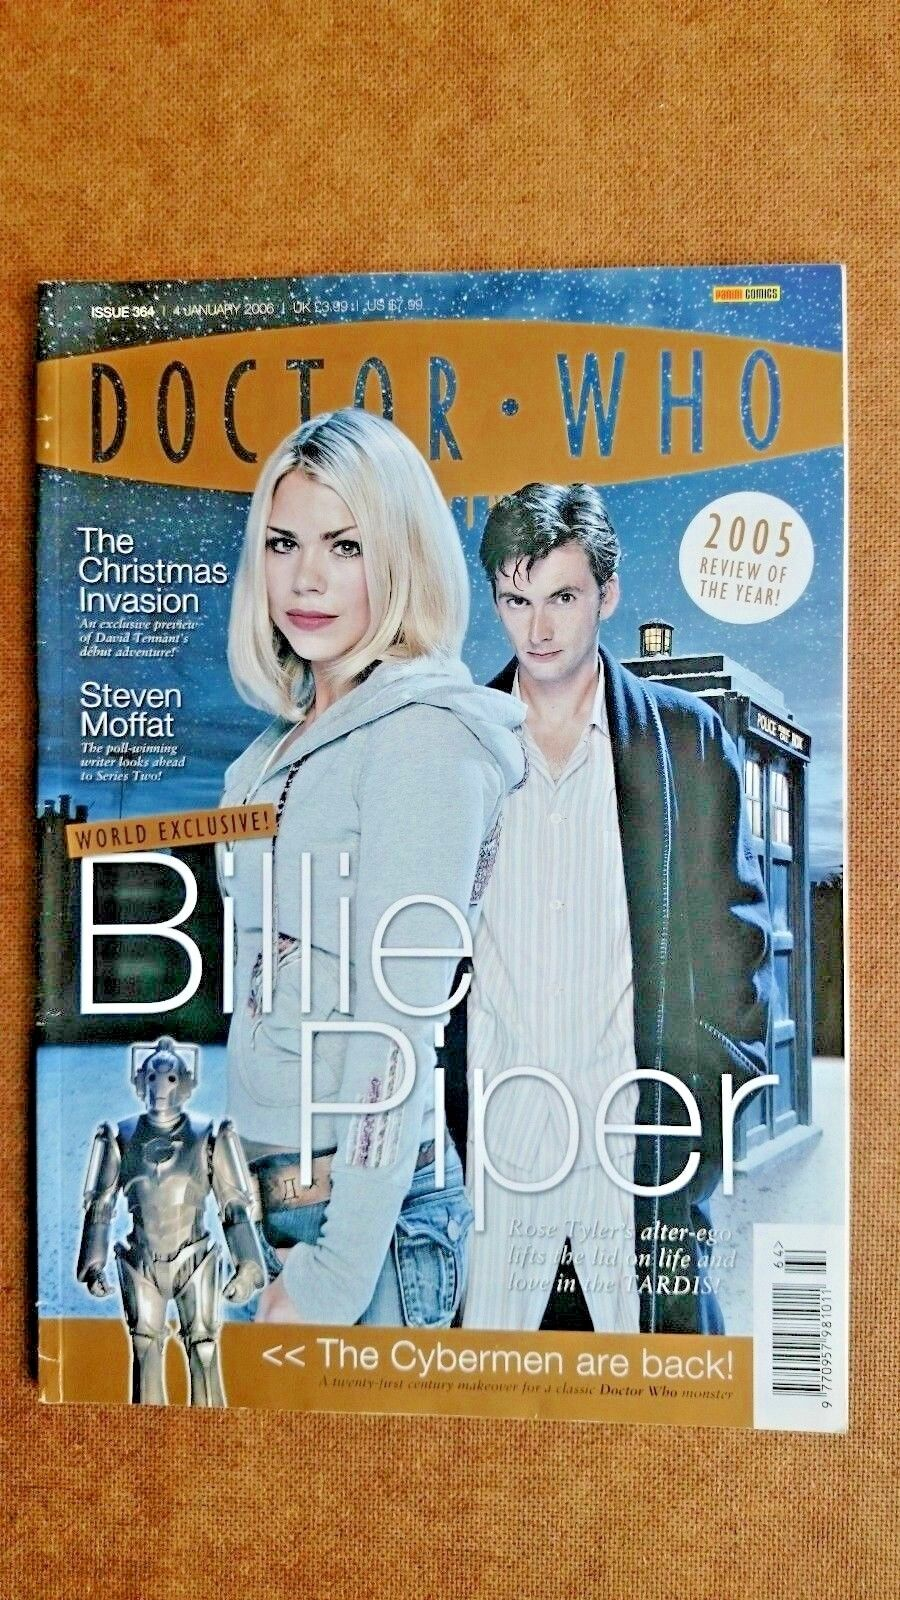 Doctor Who Magazine issue 364 Billie Piper